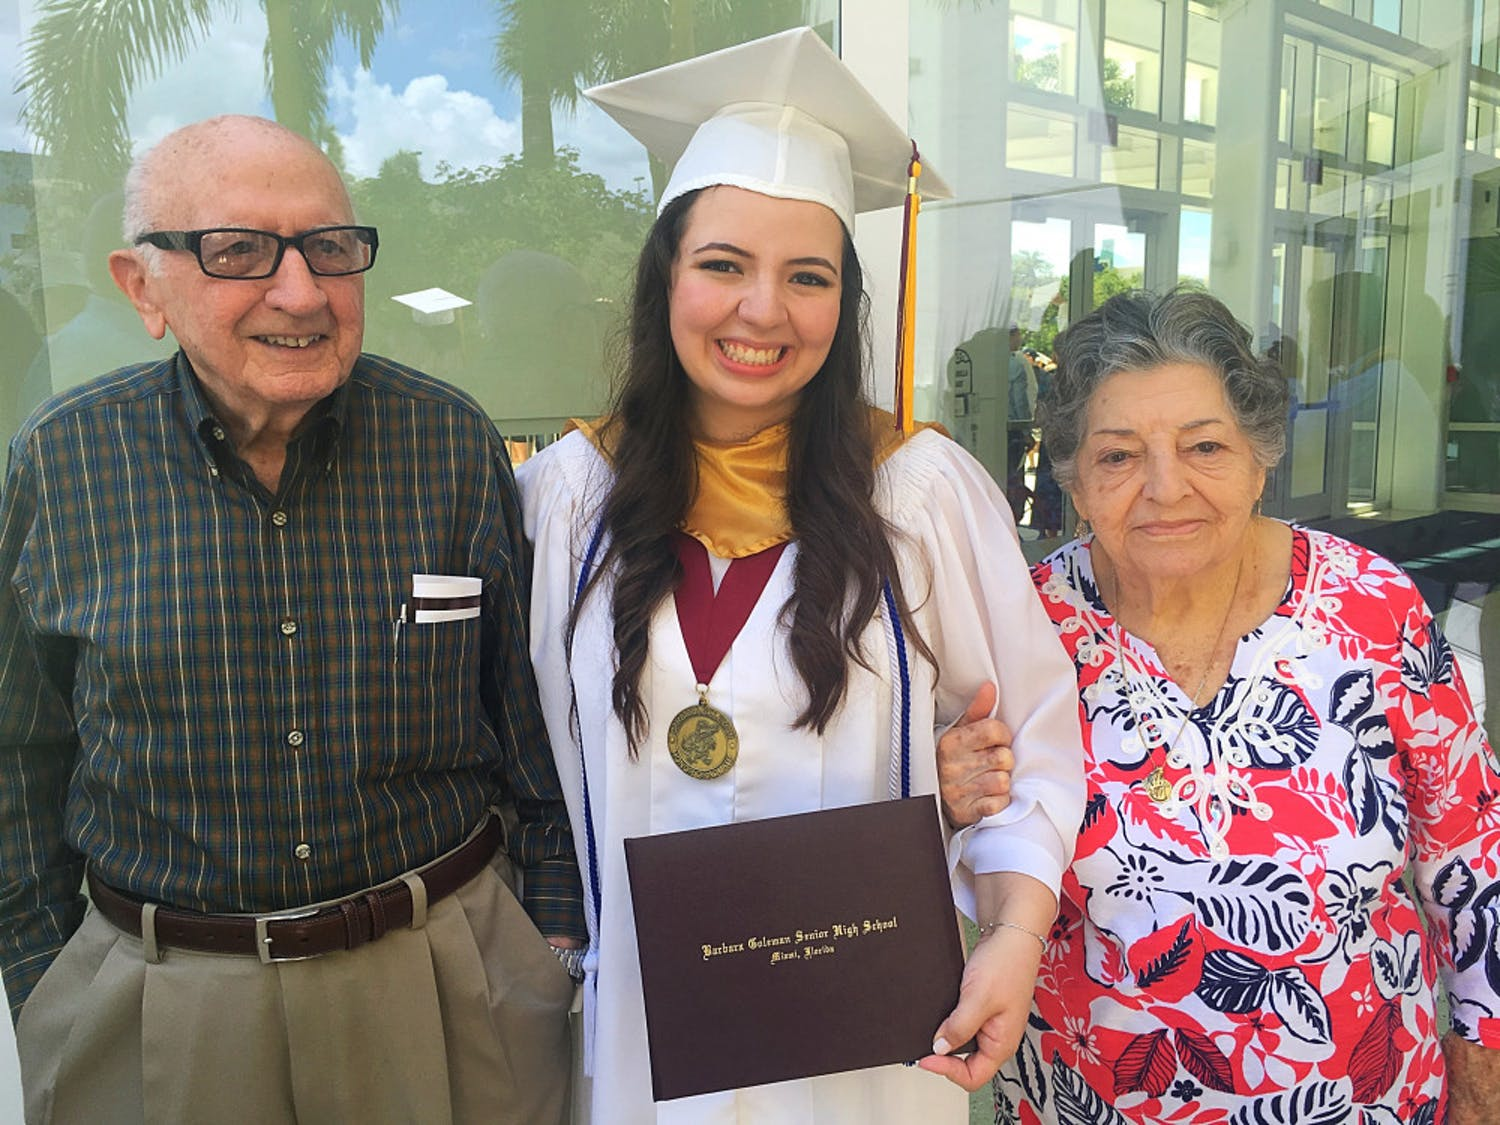 Christina Morales with Abuelo and Ayaya at her 2016 high school graduation from Barbara Goleman Senior High at Florida International University.